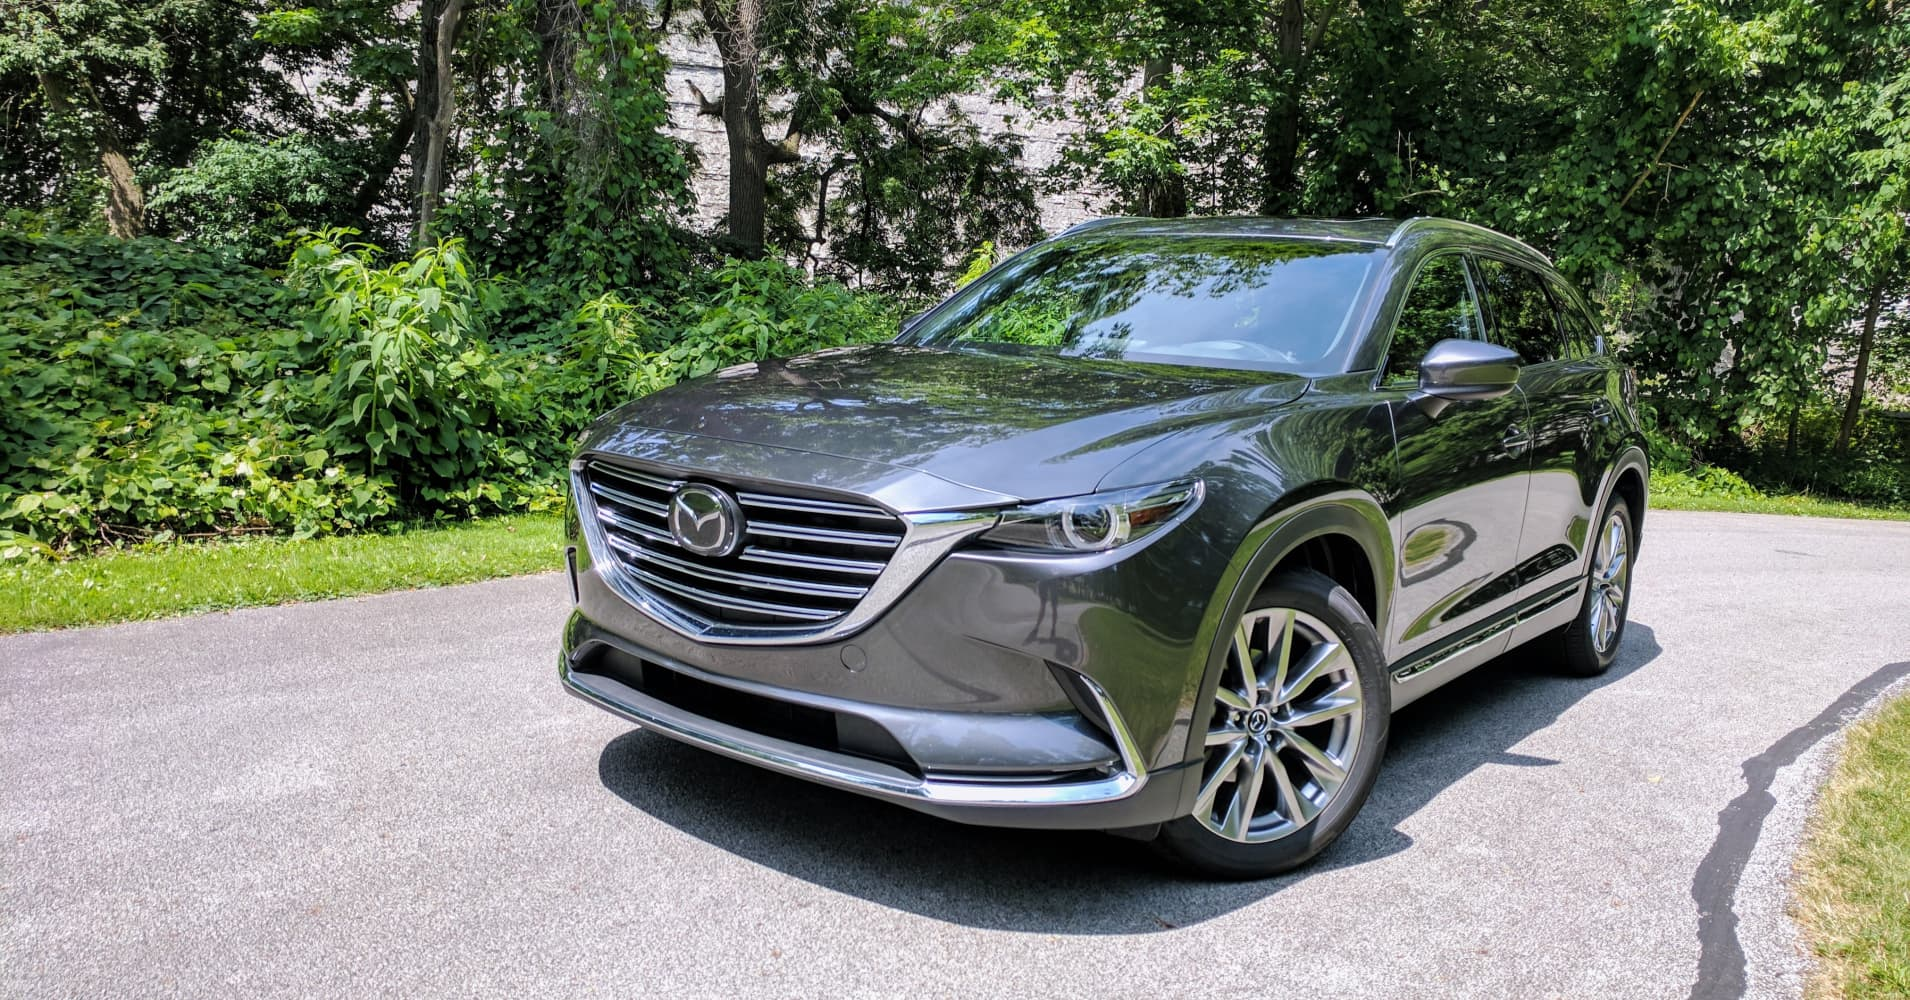 2017 mazda cx-9 review: too many sacrifices in this three-row suv